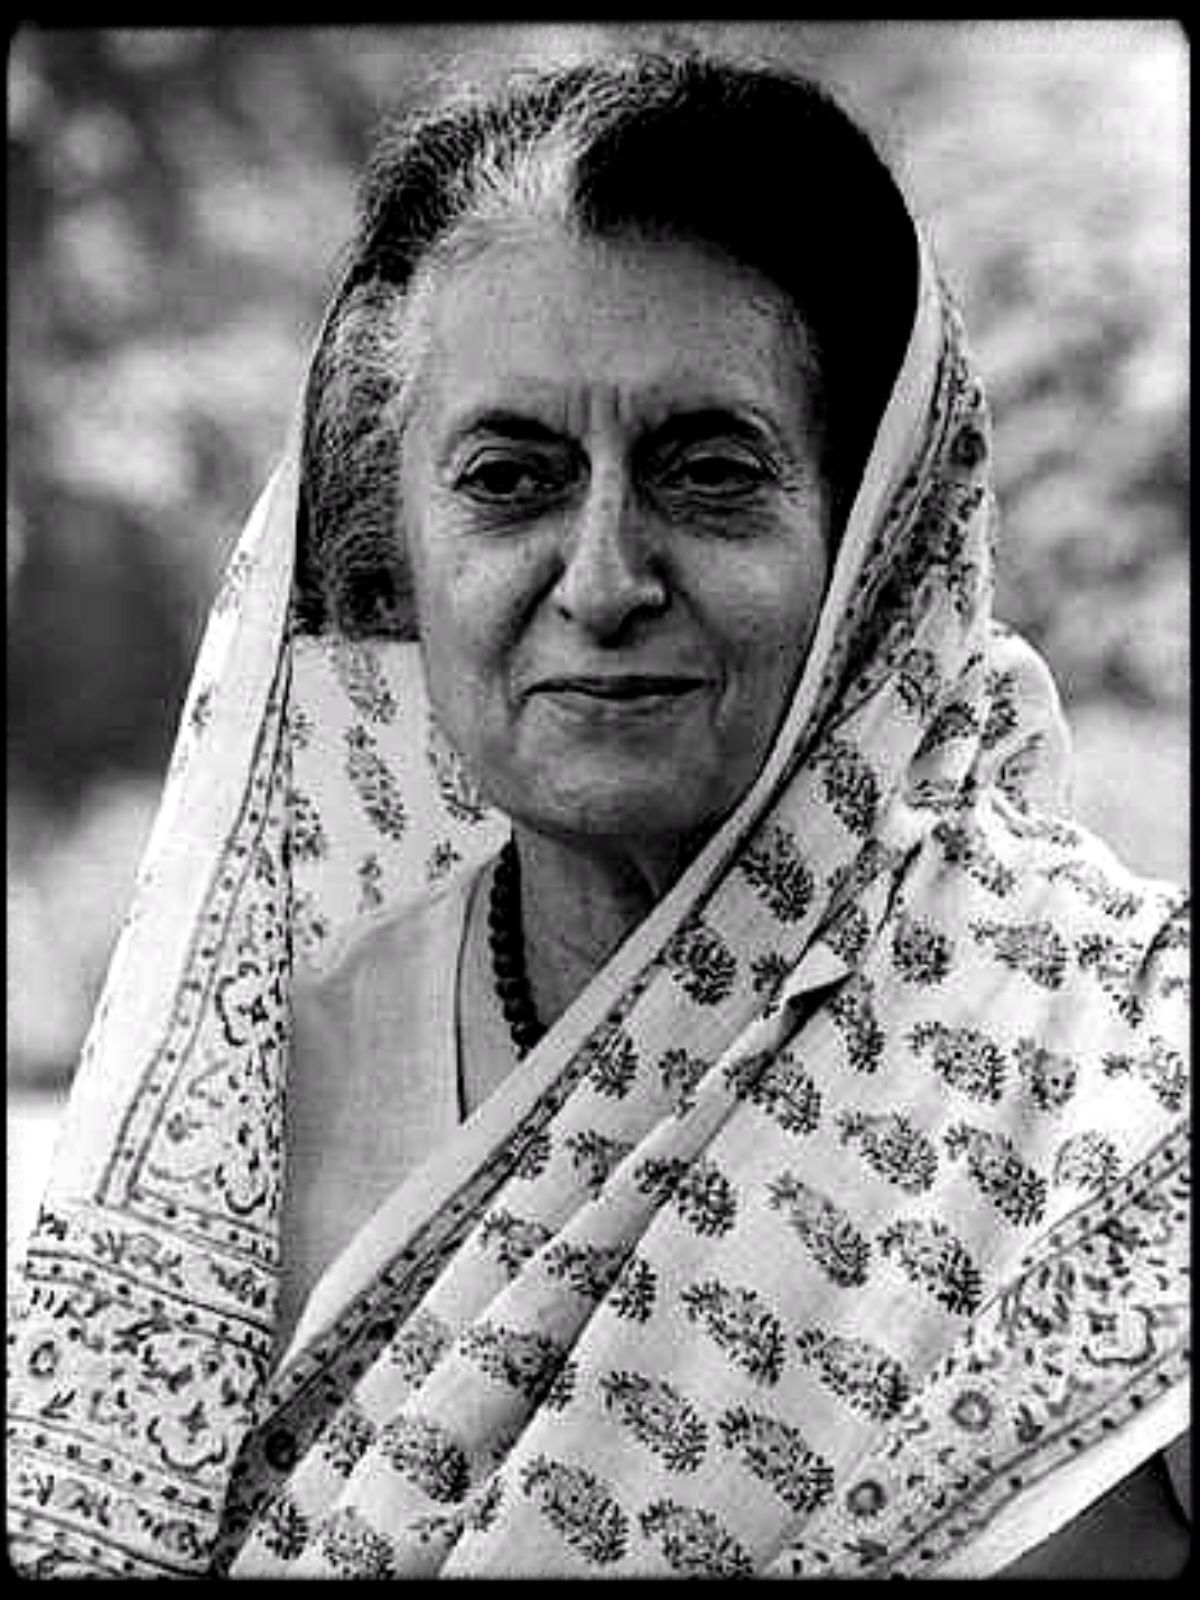 Indira Priyadarshini Gandhi (née Nehru; 19 November 1917 – 31 October 1984) was the third Prime Minister of India and a central figure of the Indian National Congress party.